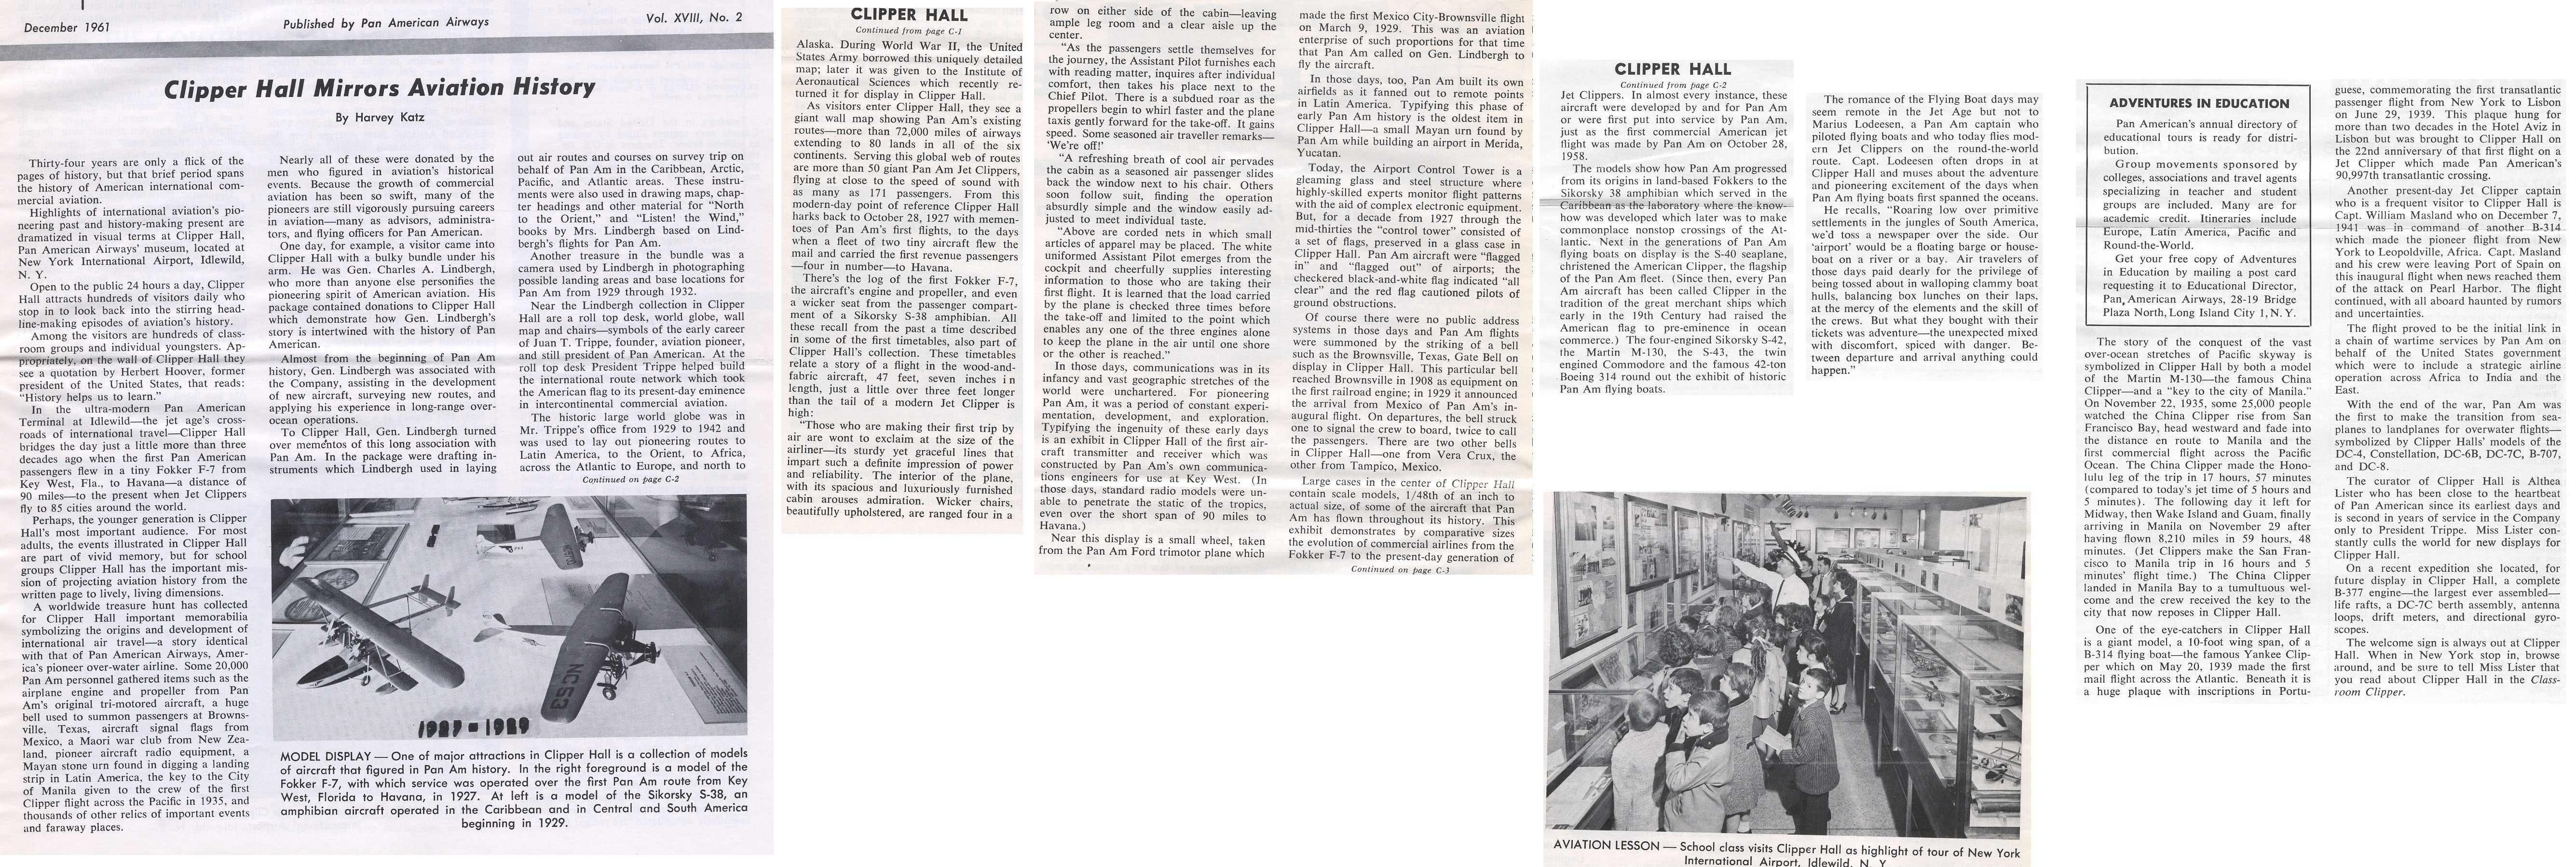 1961, December Article on Pan Am Clipper Hall at the Pan Am Airport Terminal in New York City.